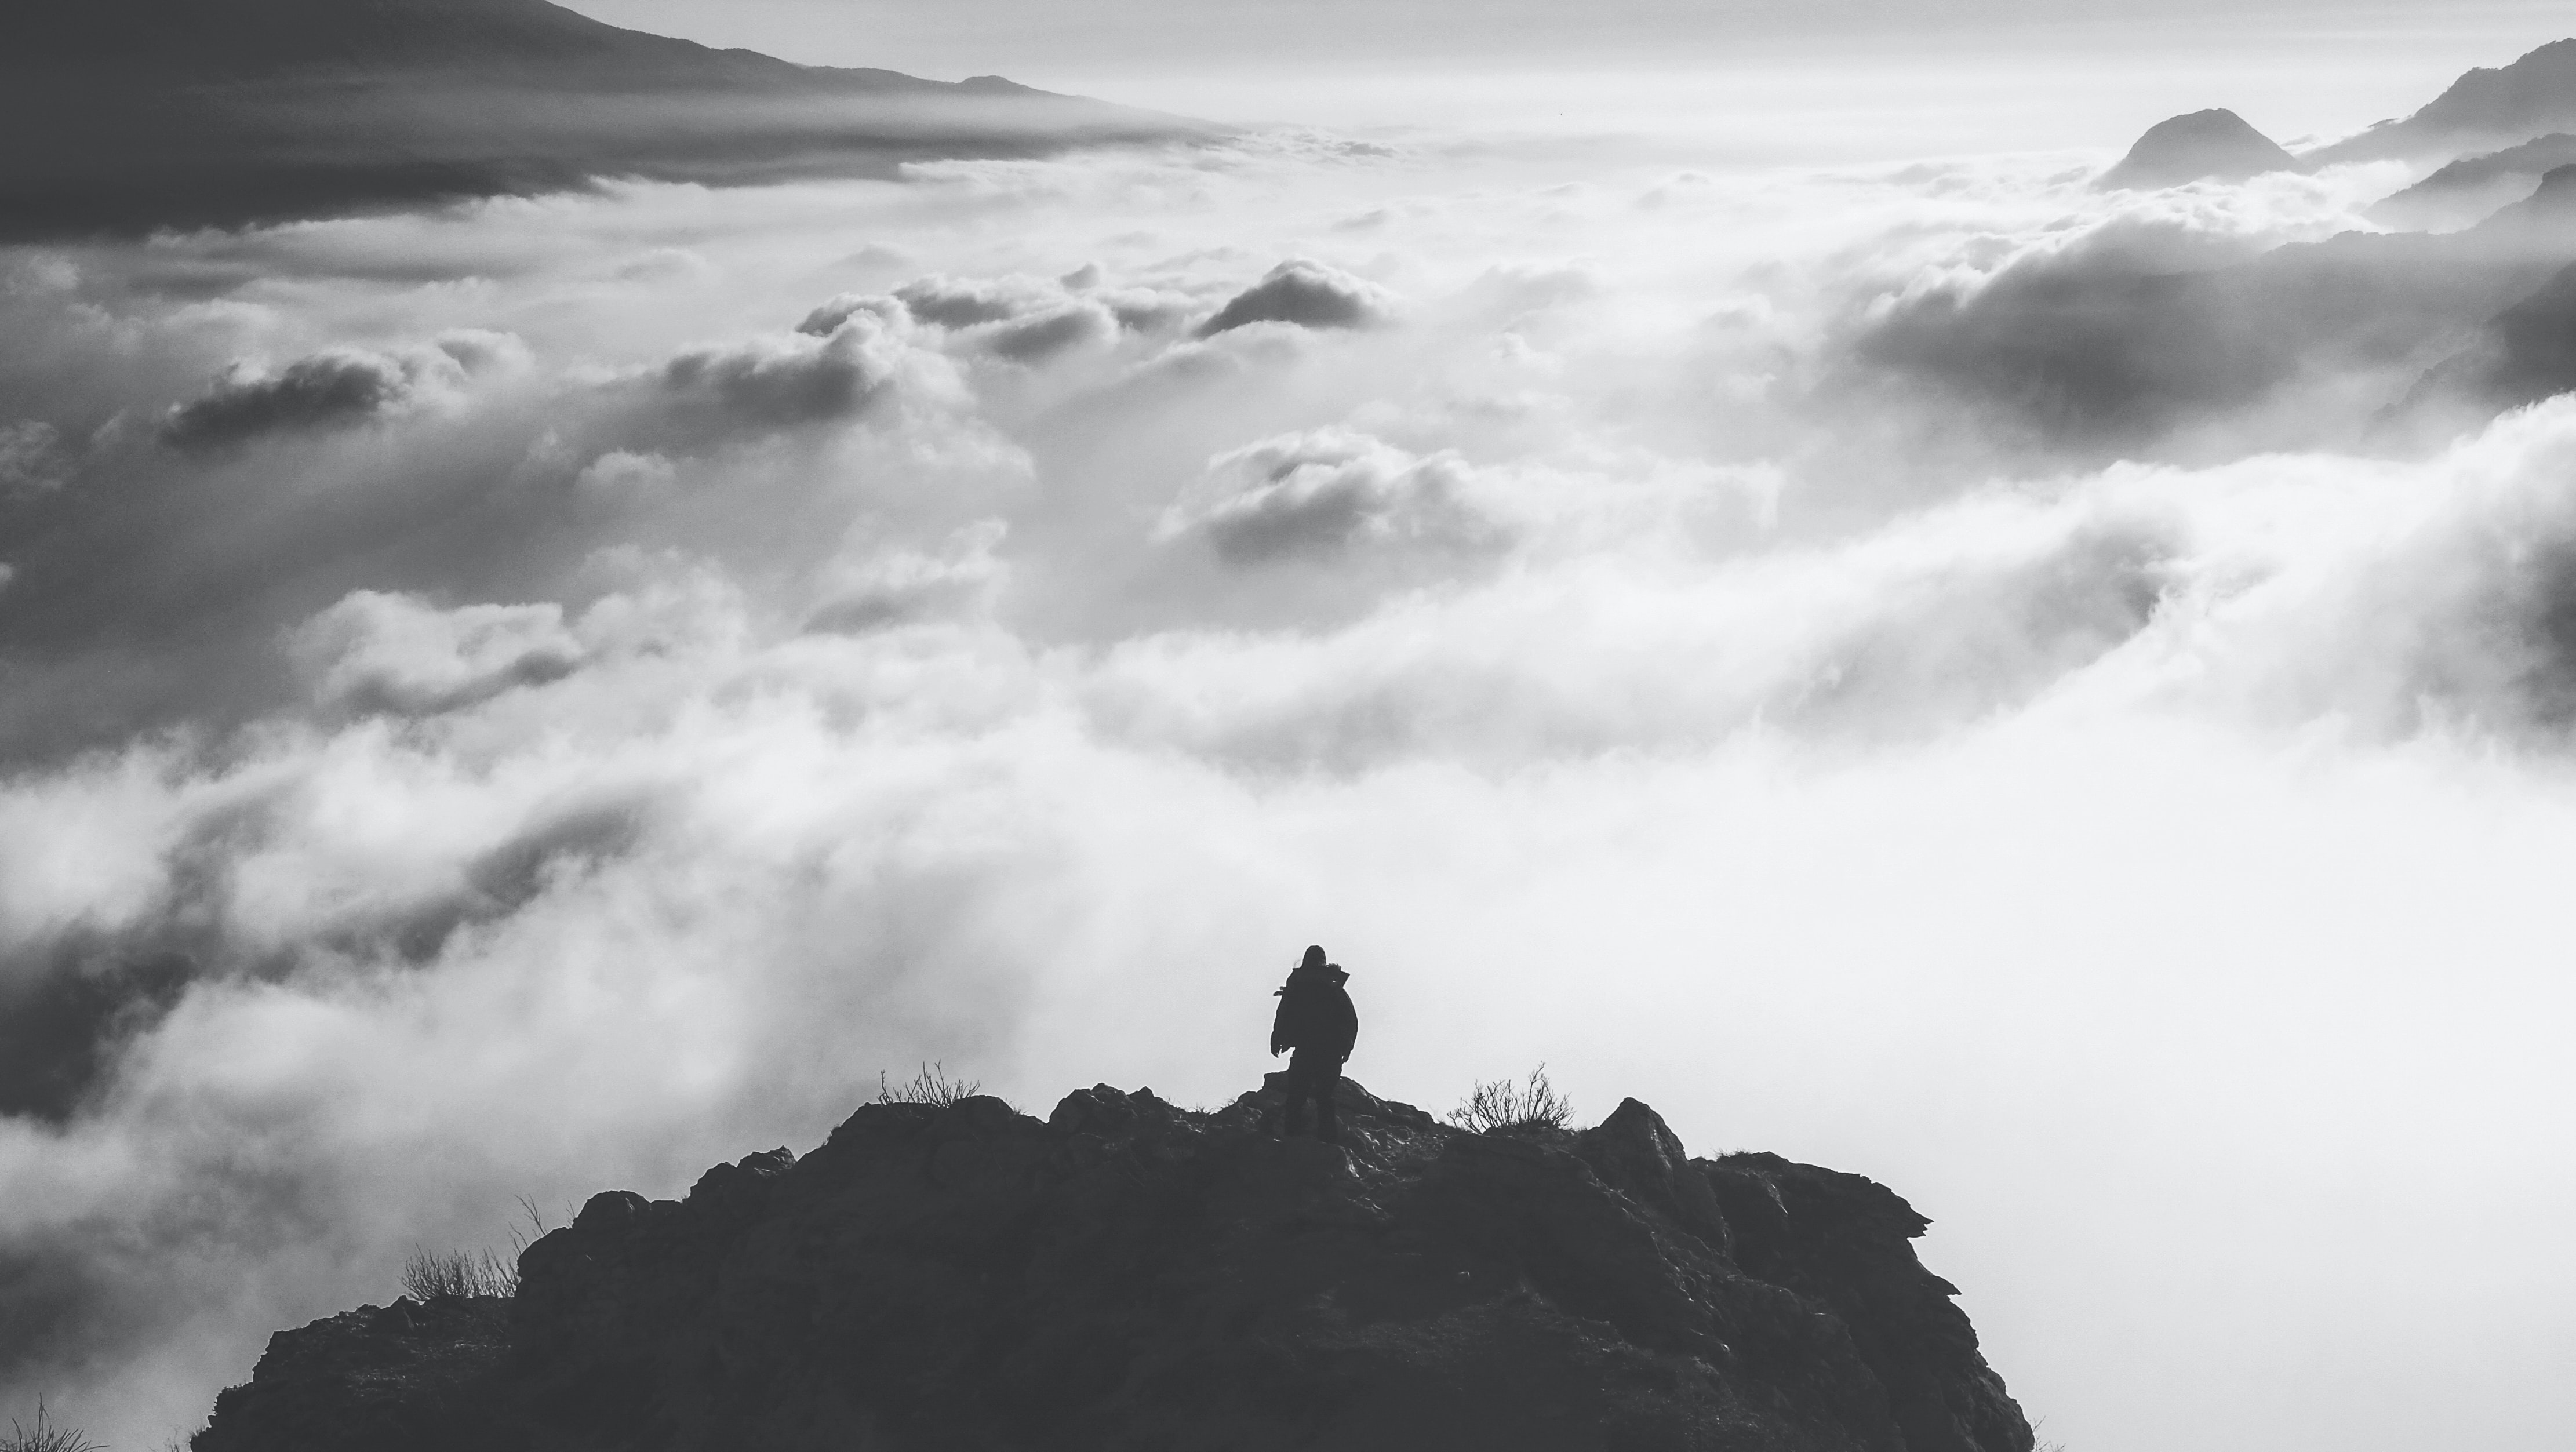 person standing at the edge of a mountain facing clouds during day